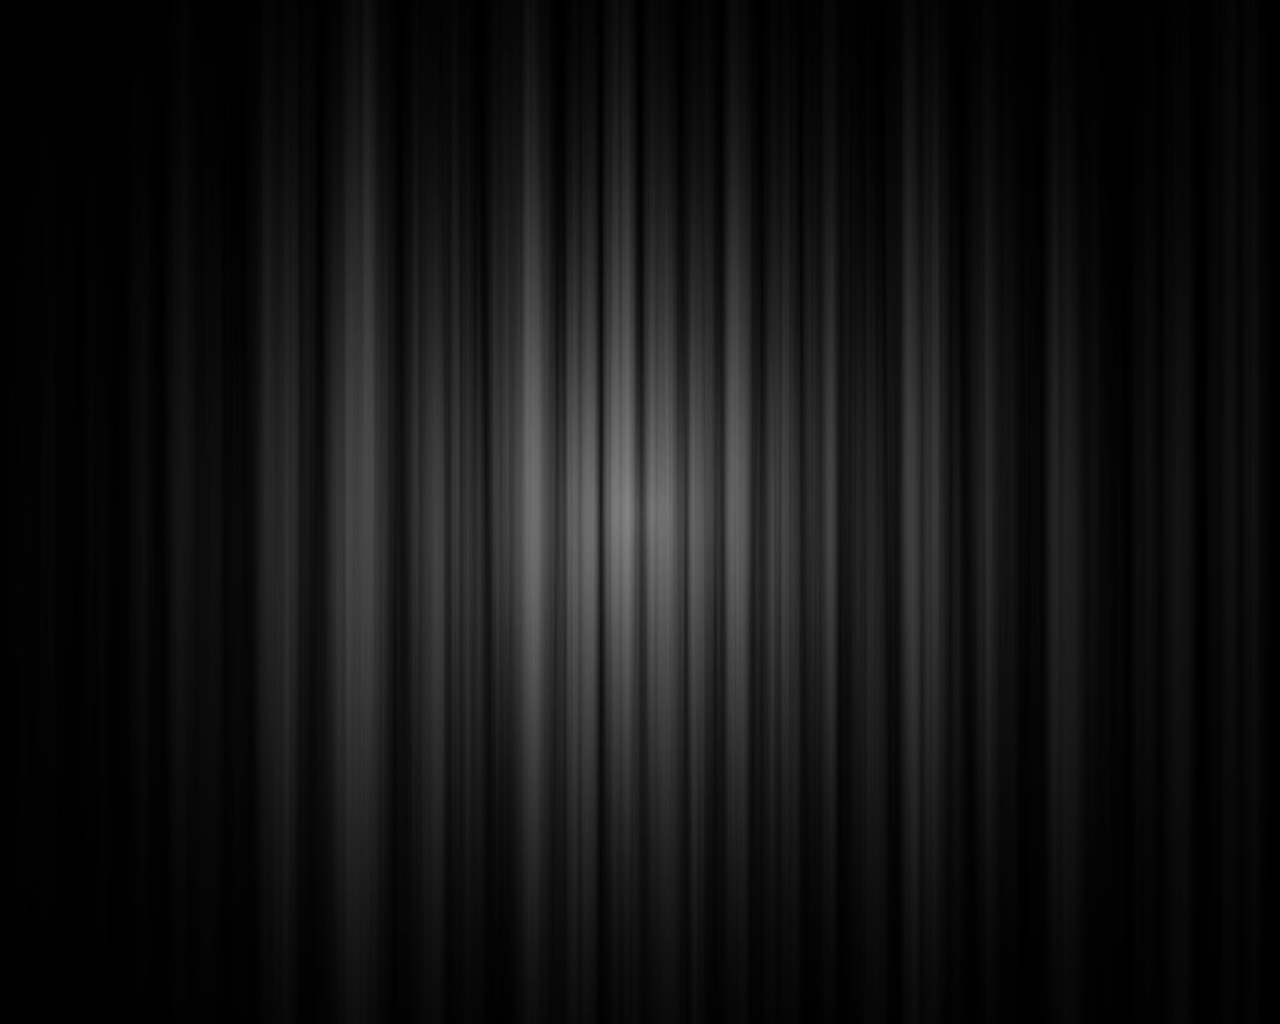 Free download grey abstract hd wallpaper background image for Black and grey wallpaper designs